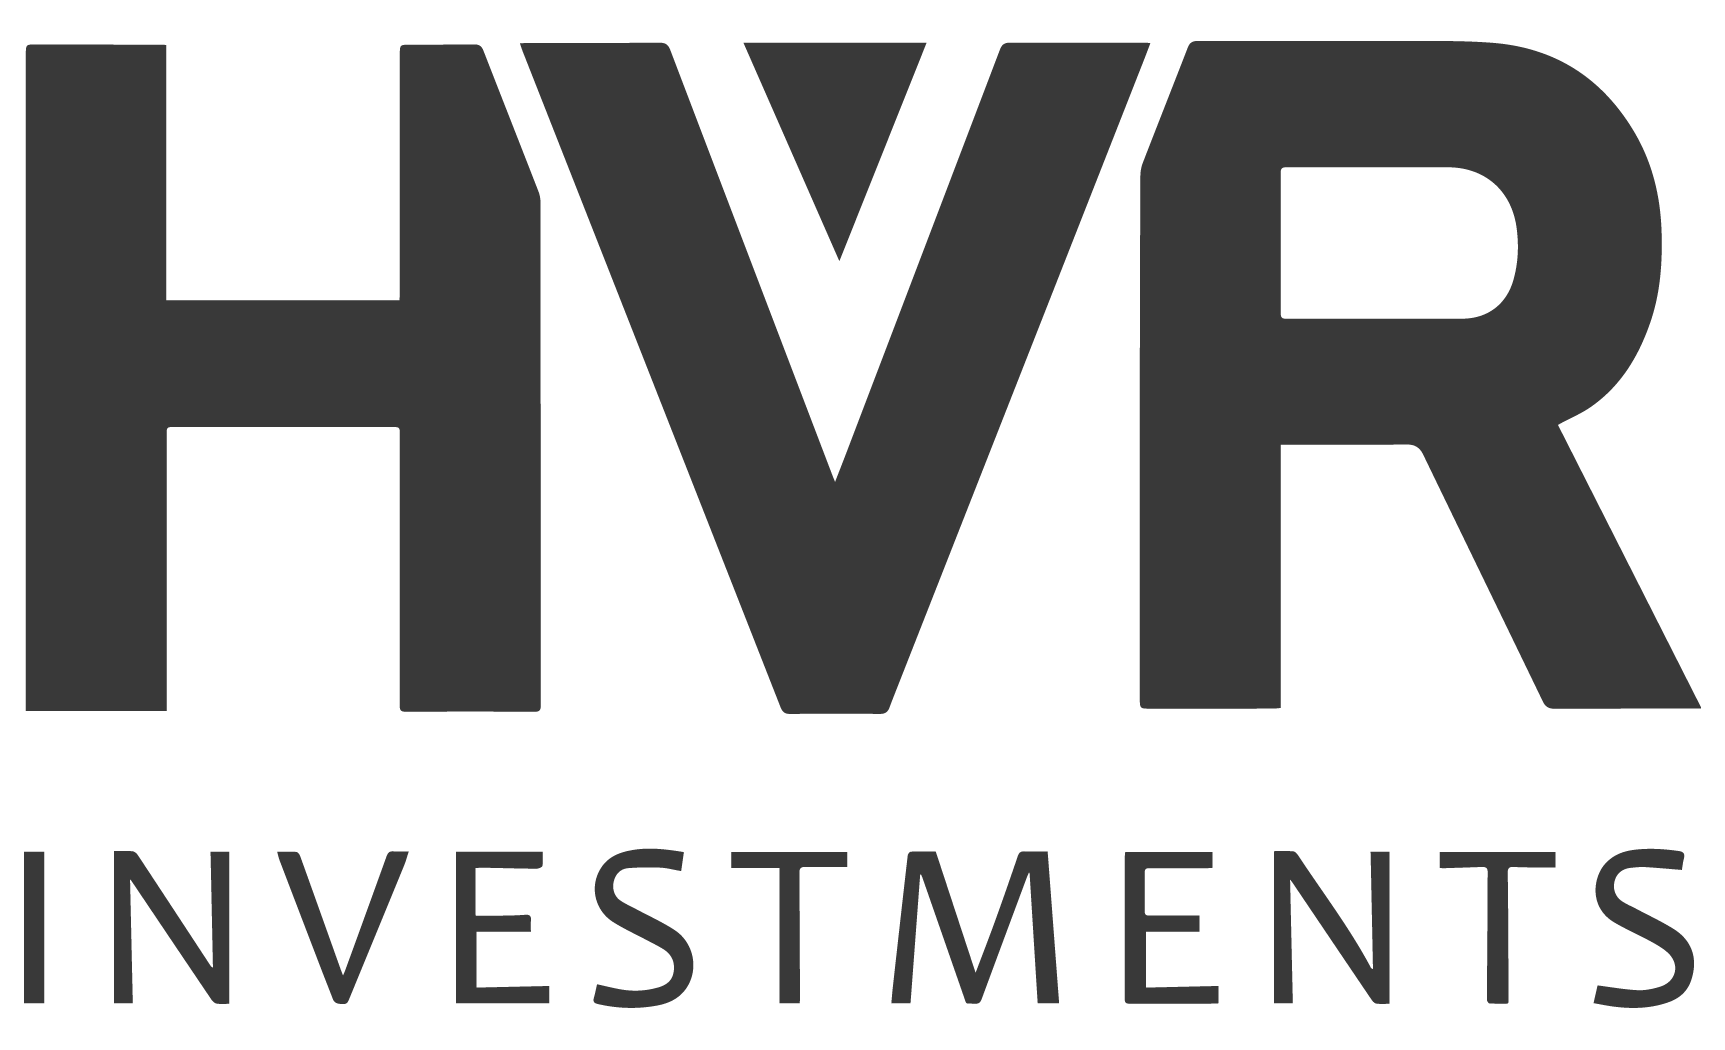 HVR Investments